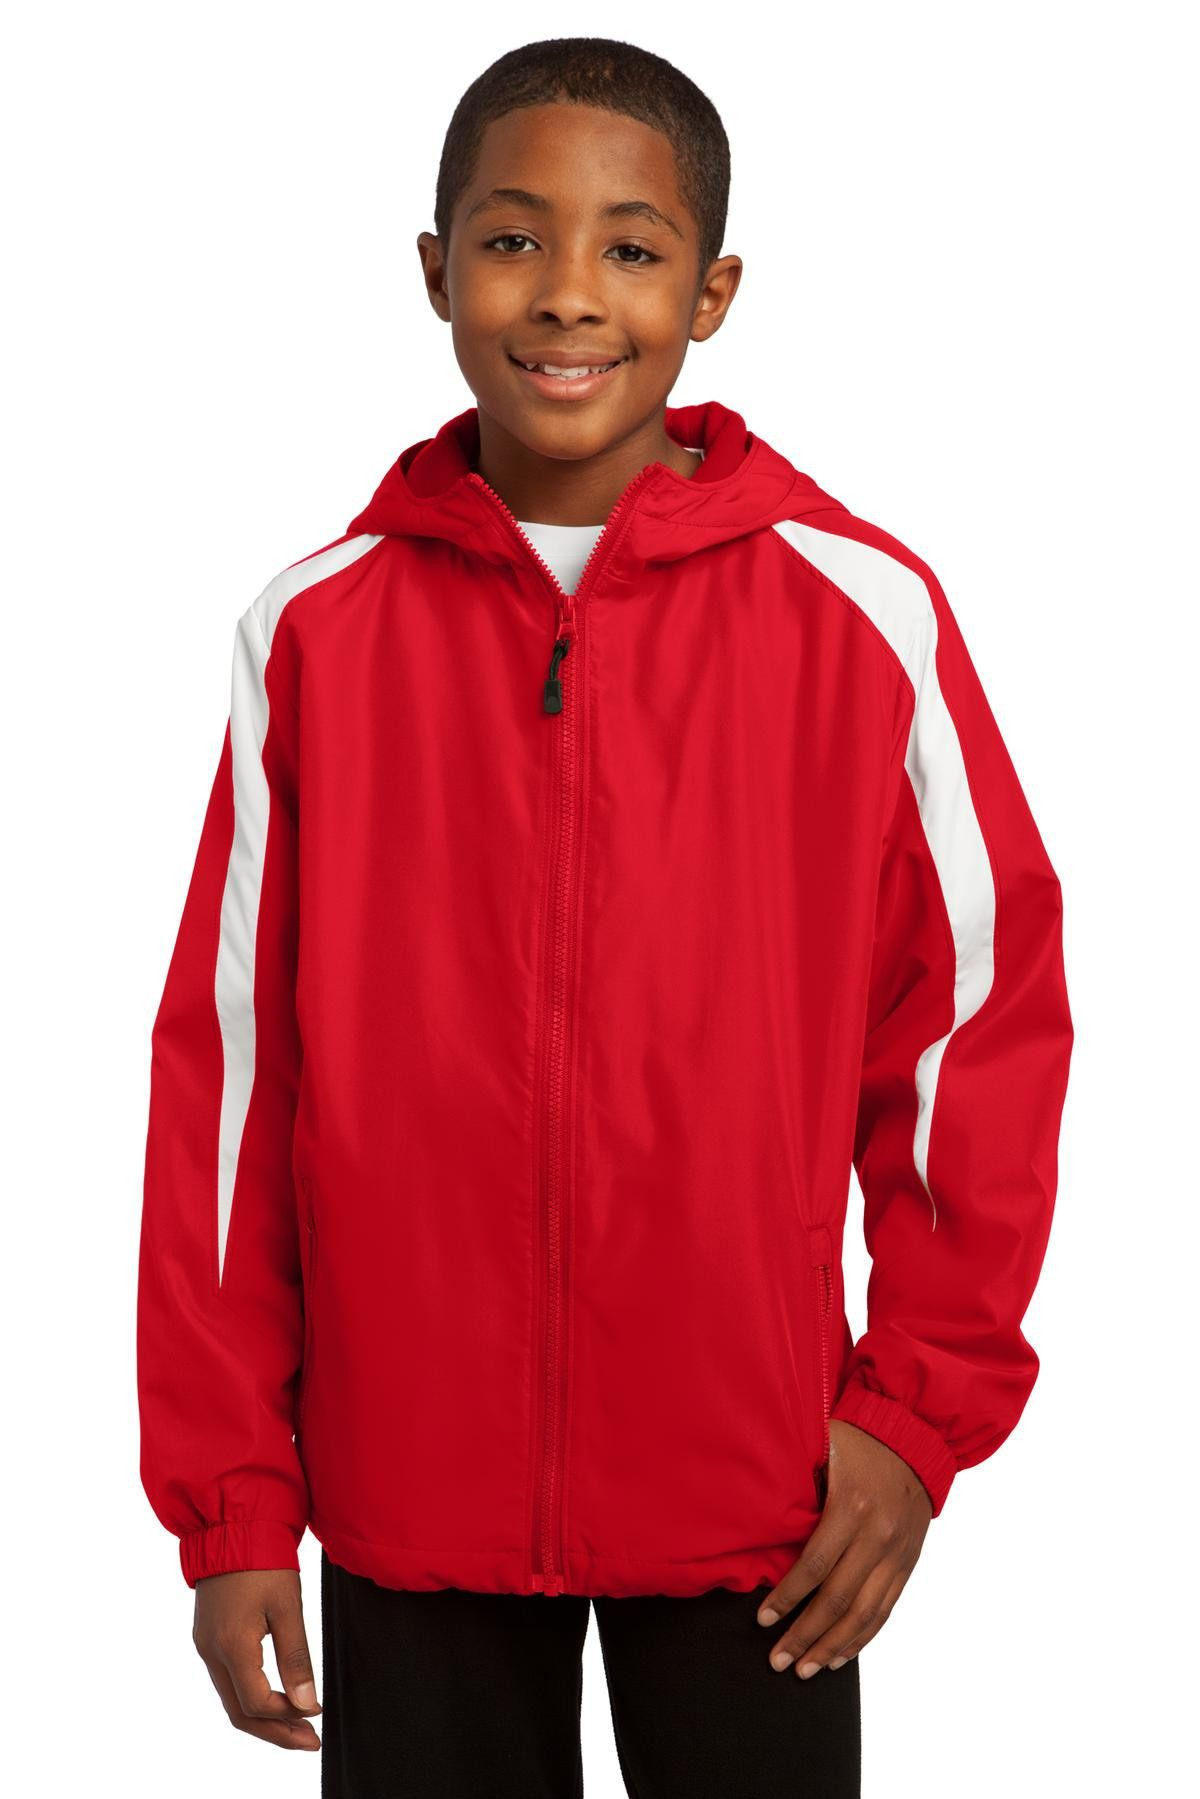 Sport-Tek Youth Fleece-Lined Colorblock Jacket. YST81 True Red/White